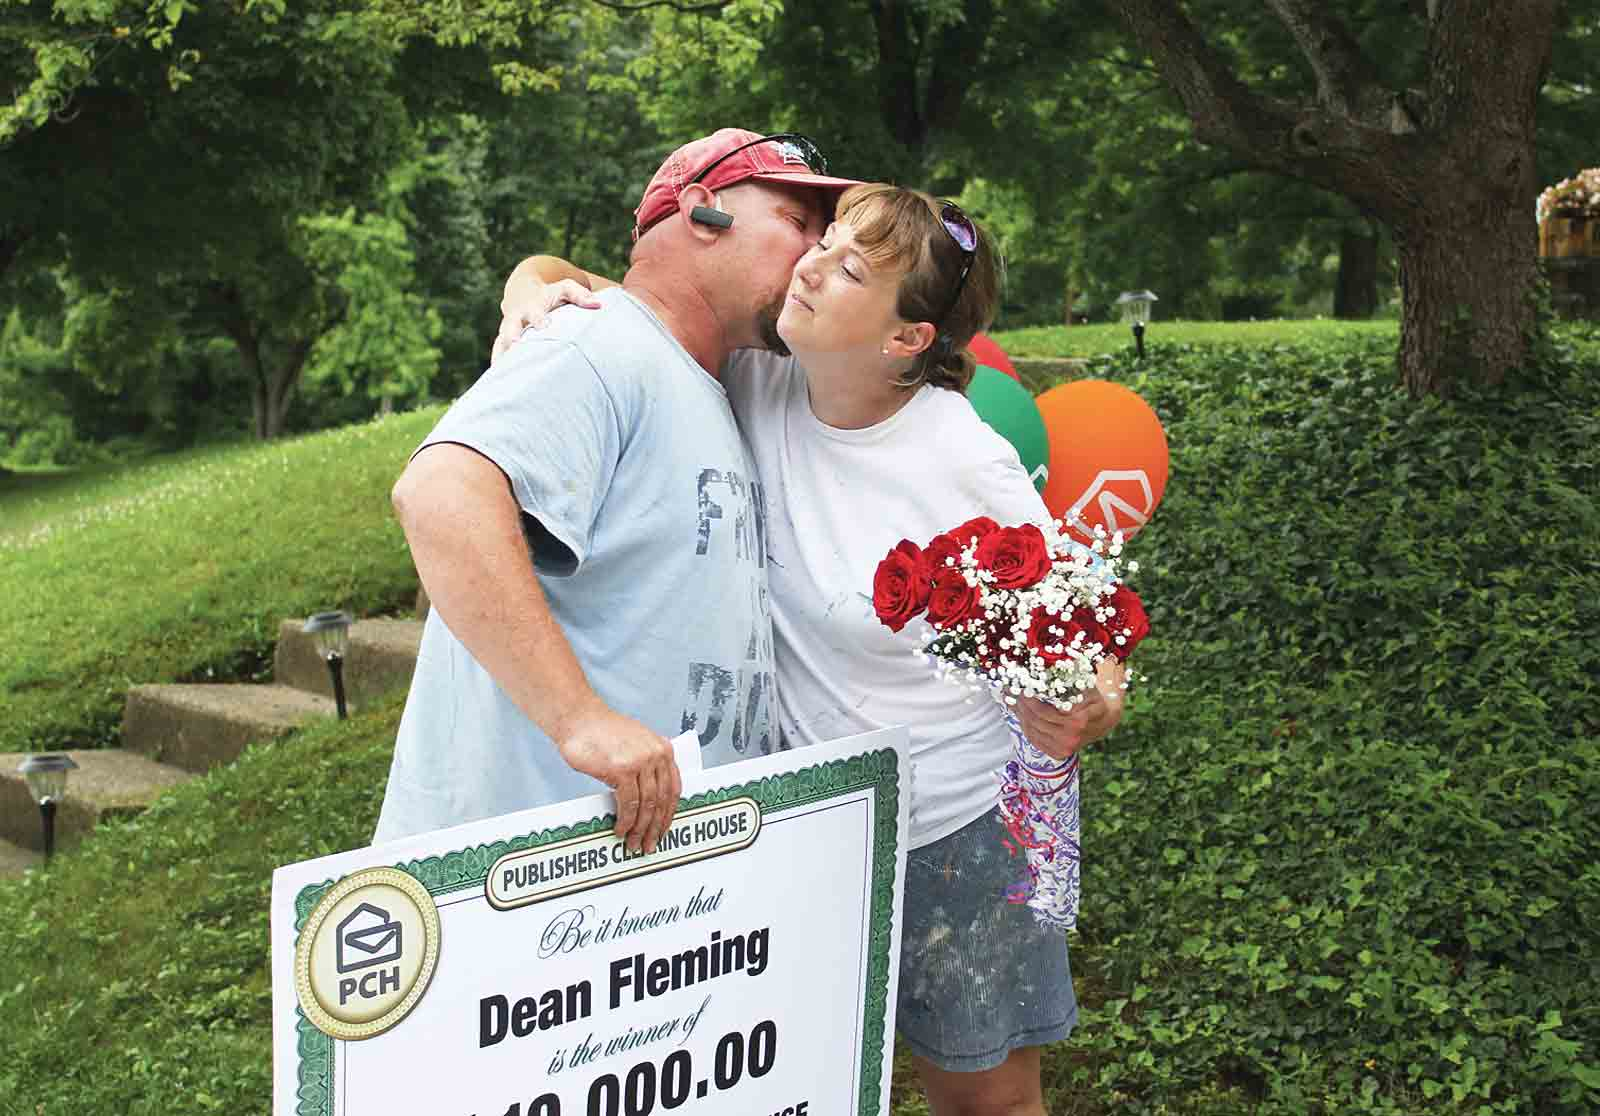 Publishers Clearing House delivers prize to local man | News, Sports